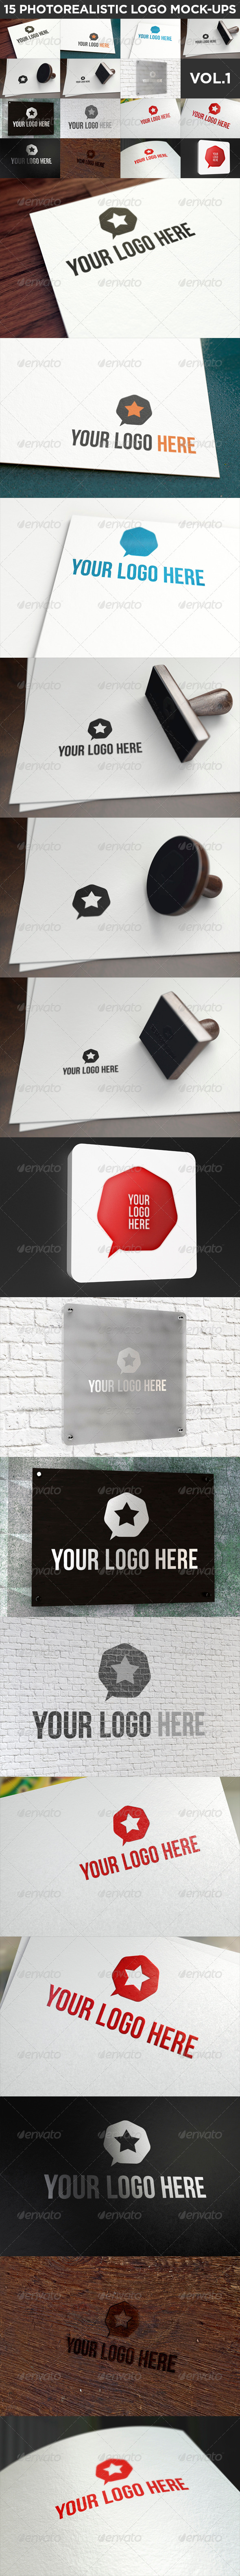 GraphicRiver 15 Realistic Logo Mock-Ups Vol.1 8655035